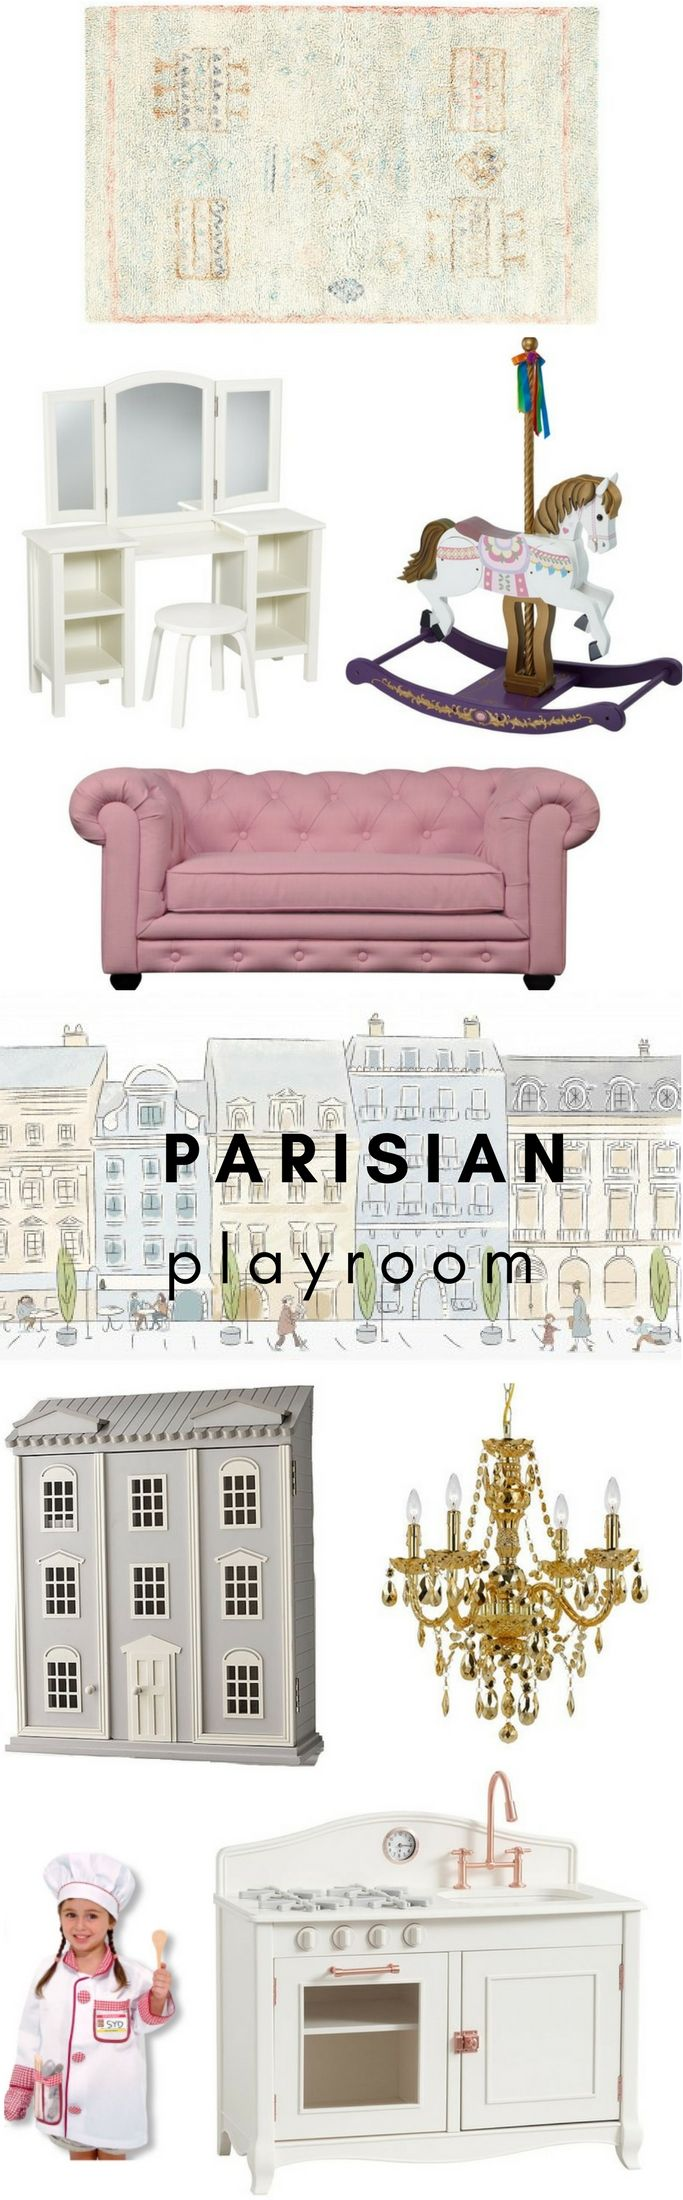 Parisian Playroom : cute playroom and nursery ideas for baby girls. Parisian-inspired playroom featuring a carousel rocking horse, pink tufted couch, white vanity and other feminine details #playroom #girlnursery